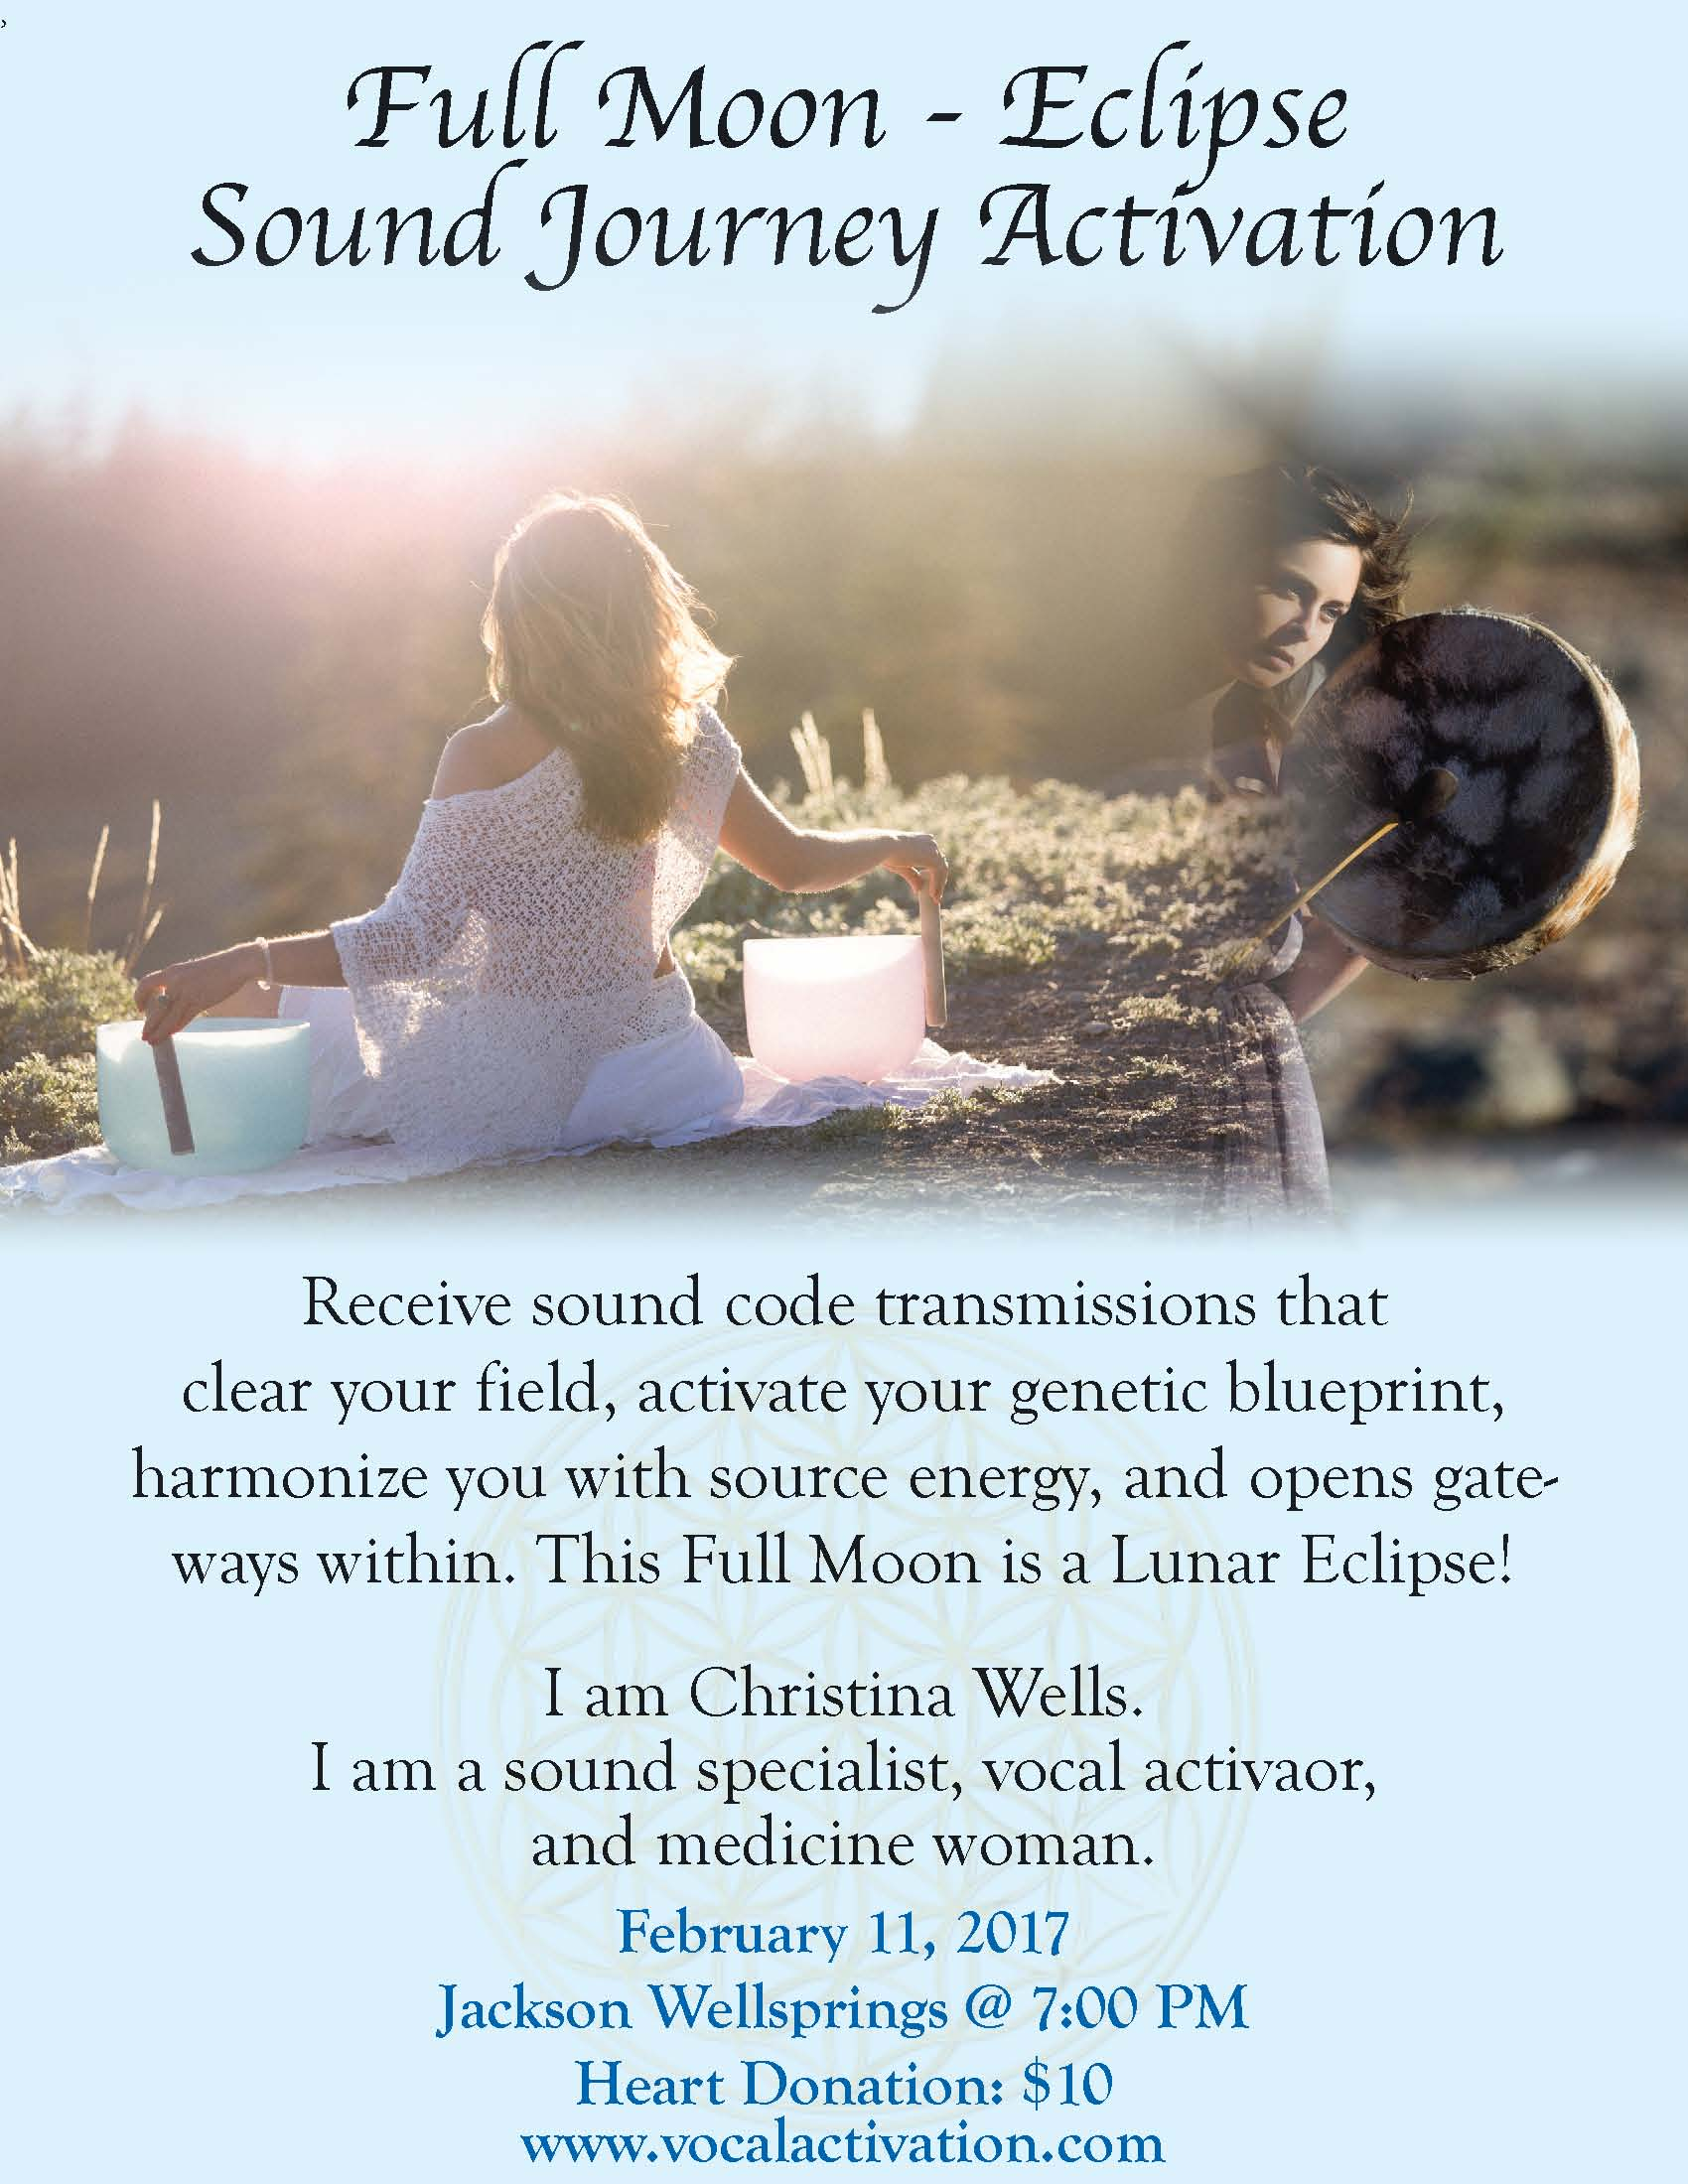 February 11th 7pm Full Moon Eclipse Sound Journey Activation